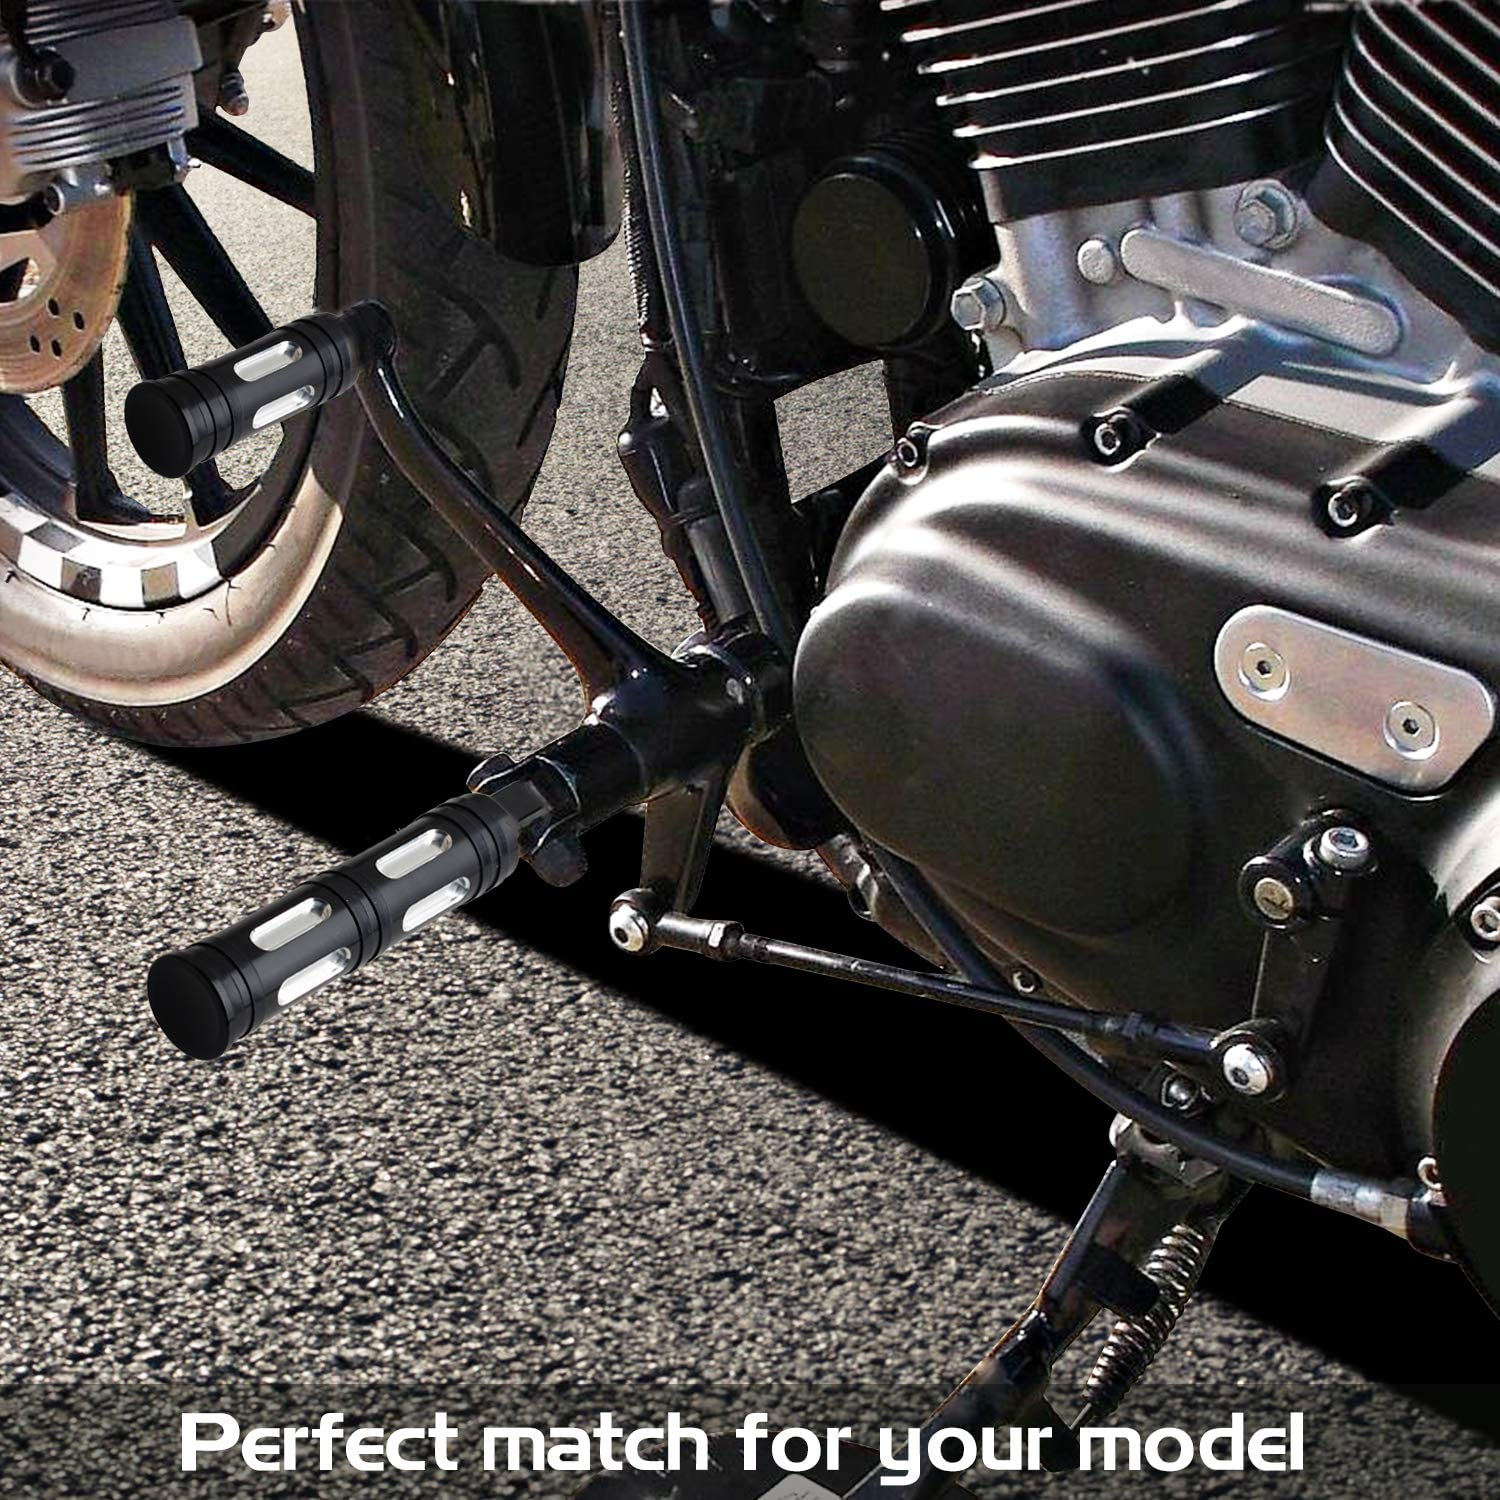 Nthreeauto Male Mount Footpegs Cnc Billet Aluminum Foot Pegs Motorcycle Footrests Pedal For Harley Sportster 1200